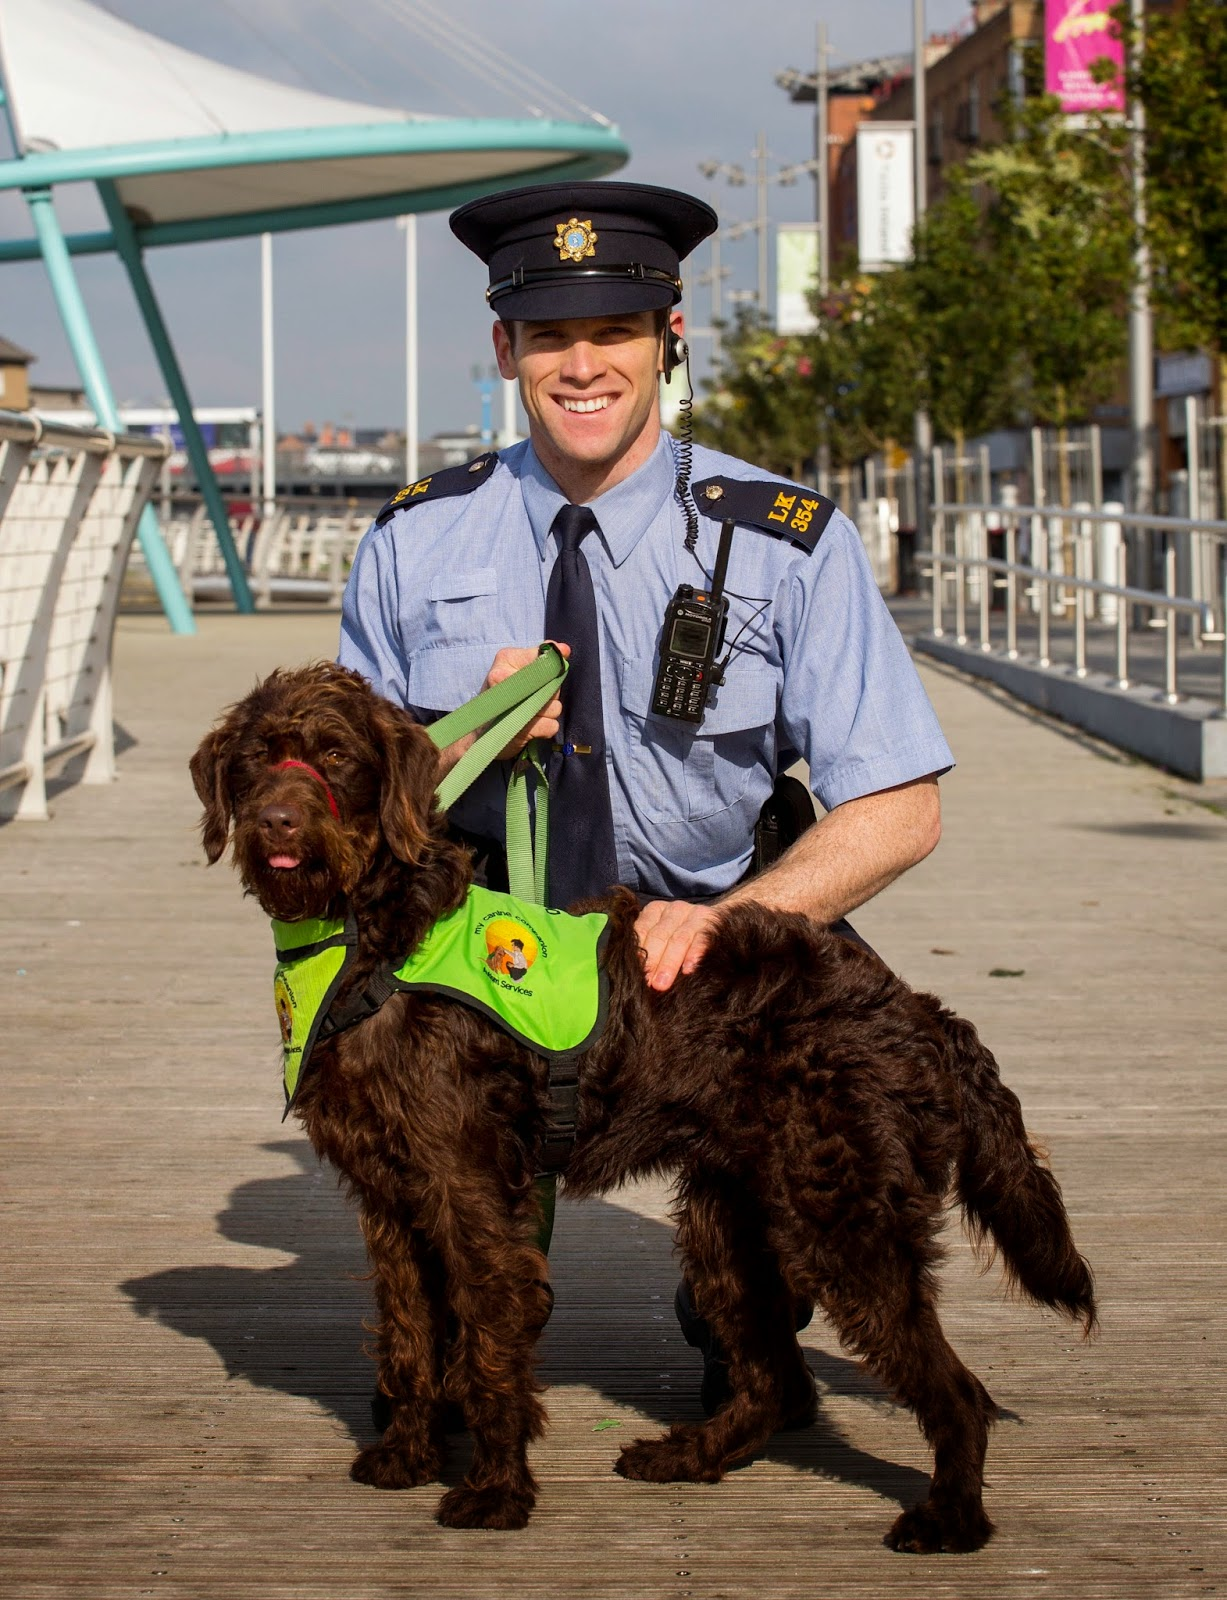 New campaign combats dog fouling in Limerick